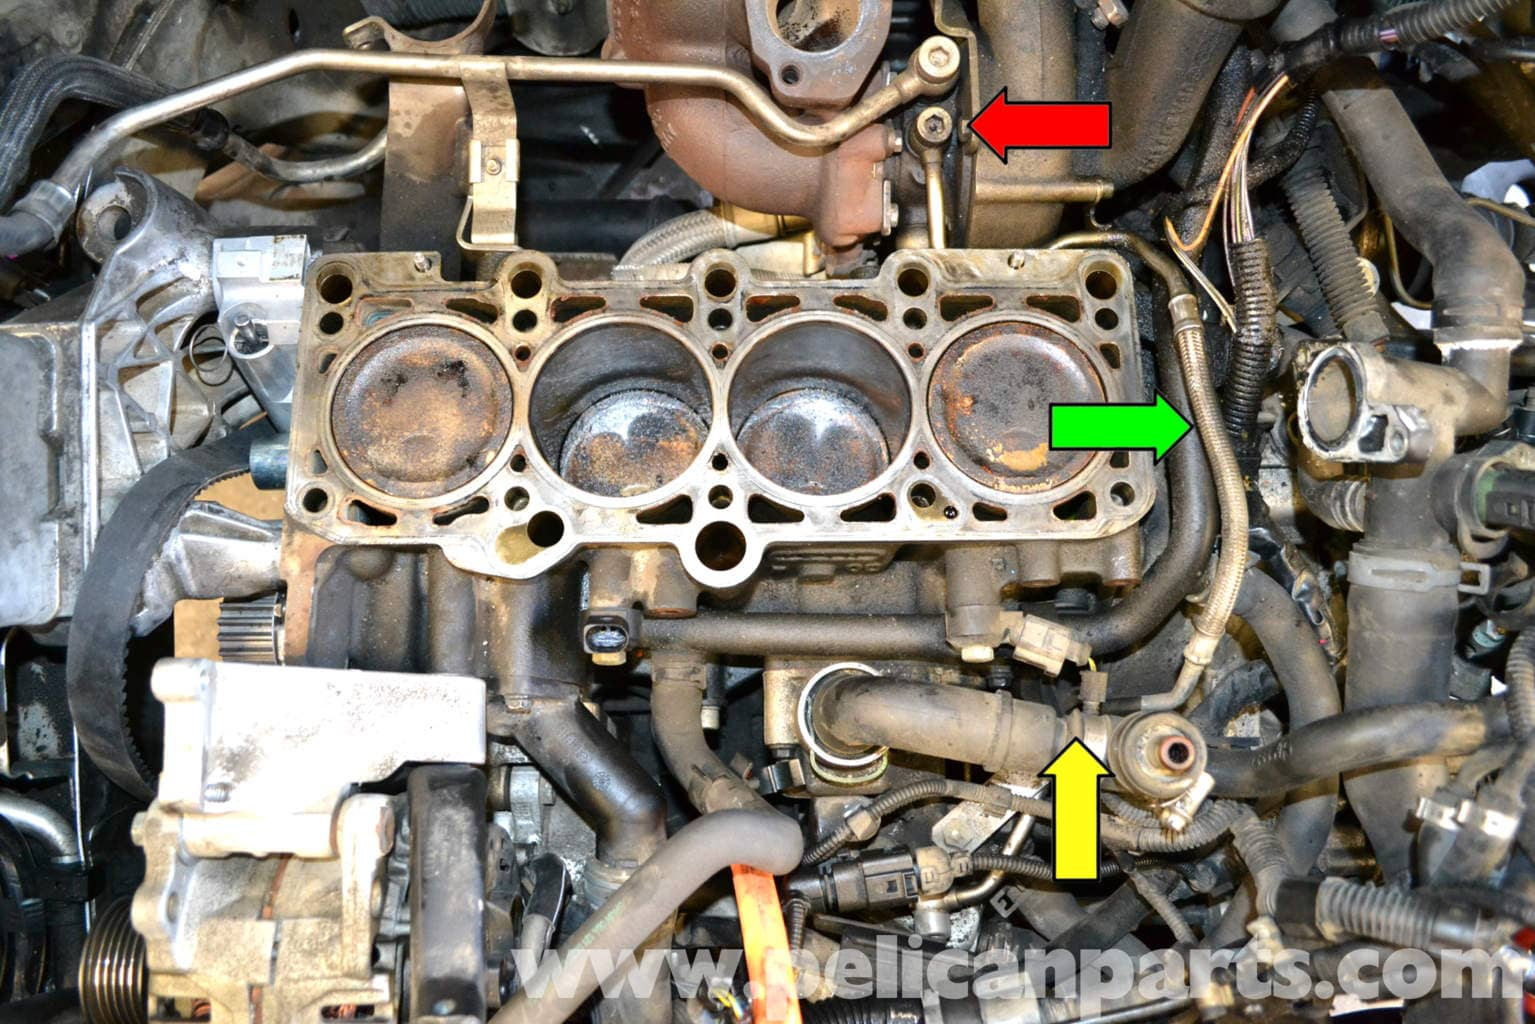 Volkswagen Golf Gti Mk Iv Turbo Replacement  1999-2005